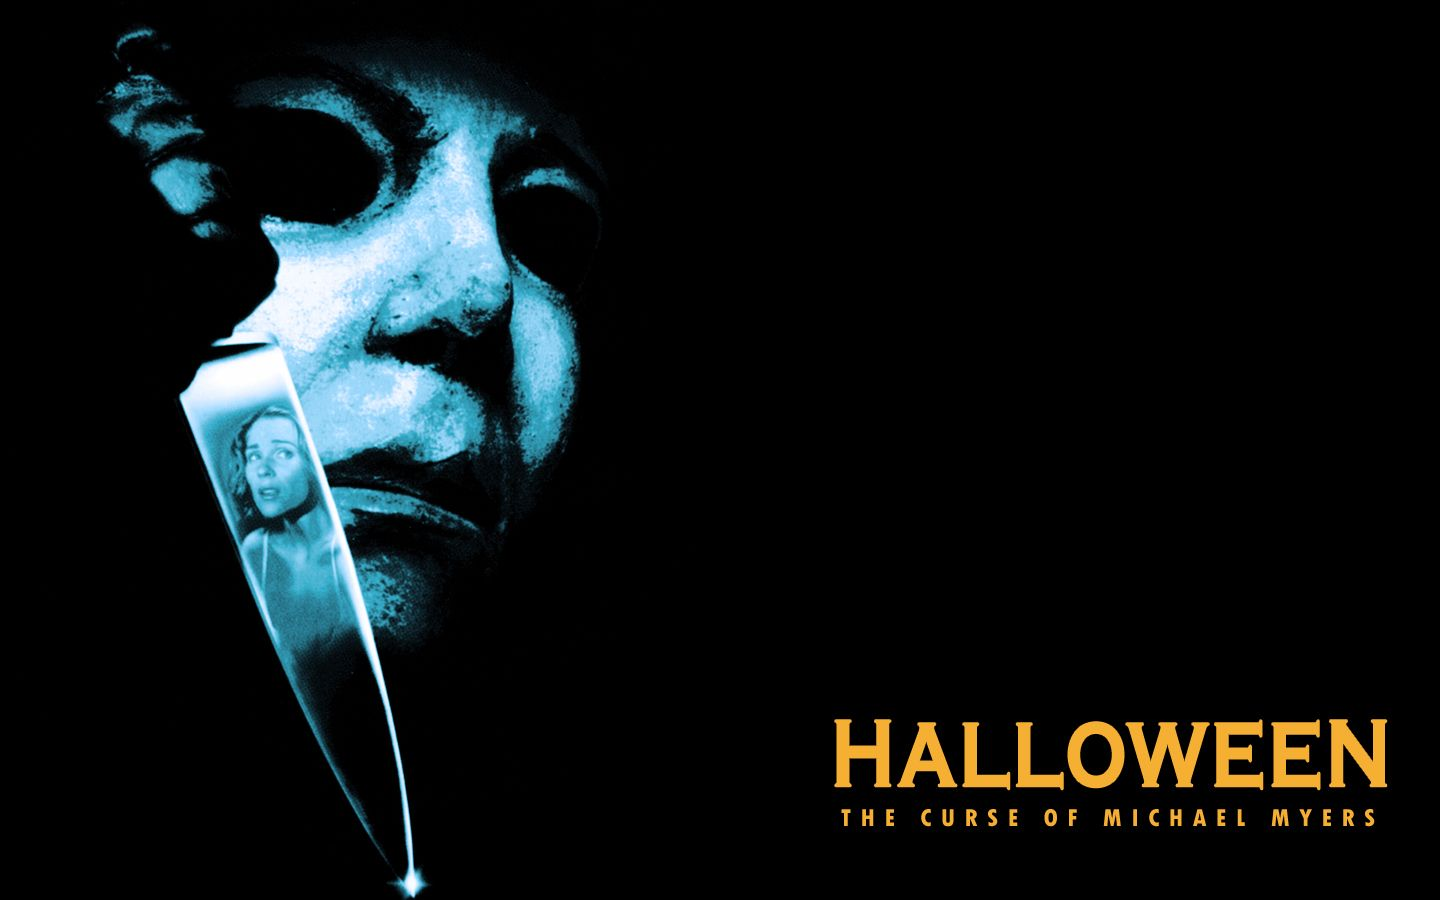 Michael Myers Wallpaper Michael Myers Halloween Wallpaper Michael Myers Halloween